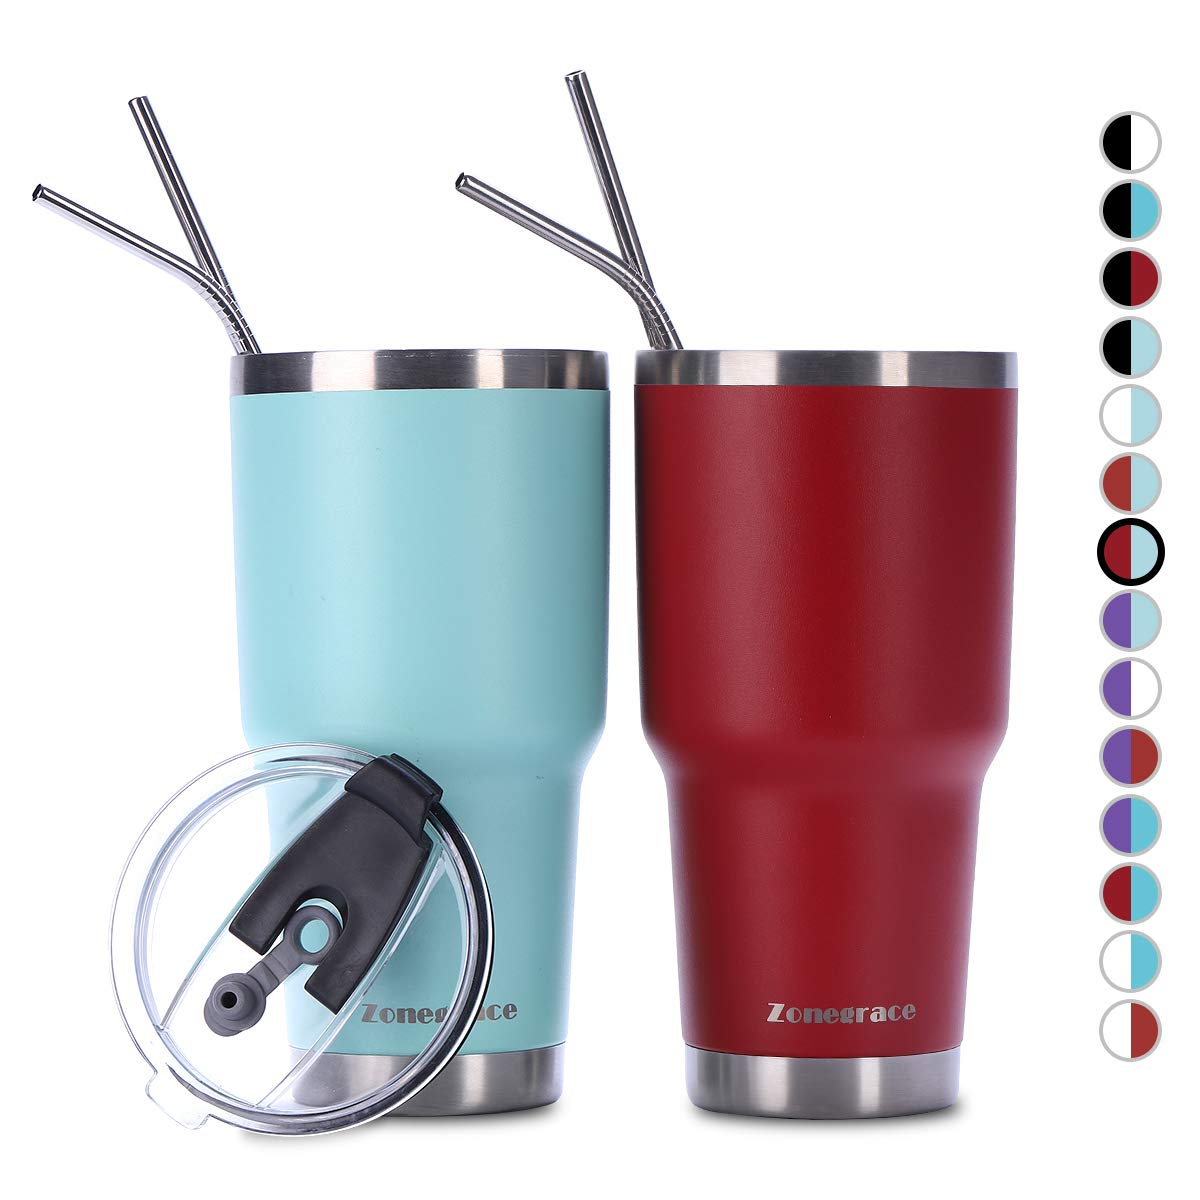 Thermal Cup with Splash Proof Sliding Lid Stainless Steel Vacuum Insulated Double Wall Travel Tumbler Zonegrace 2 Pack 20oz Tumbler with Lid with Straw Durable Insulated Coffee Mug